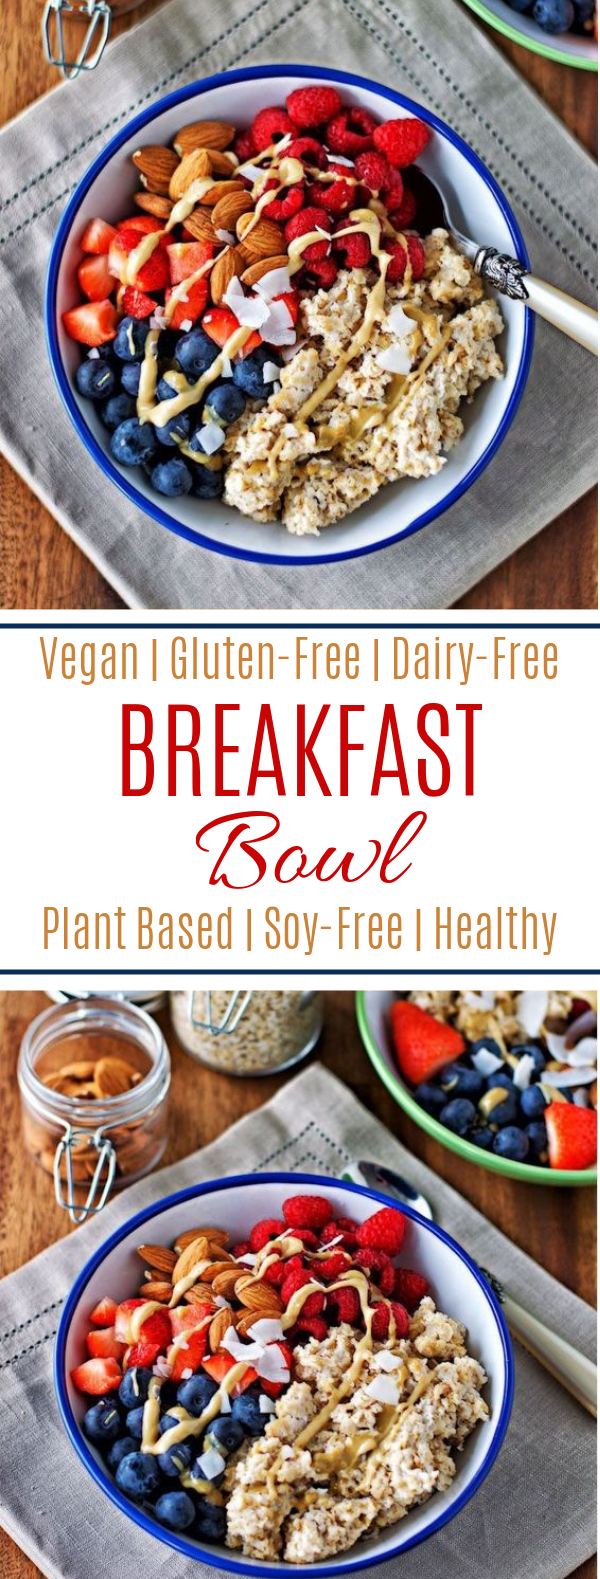 Breakfast Bowl #vegan #glutenfree